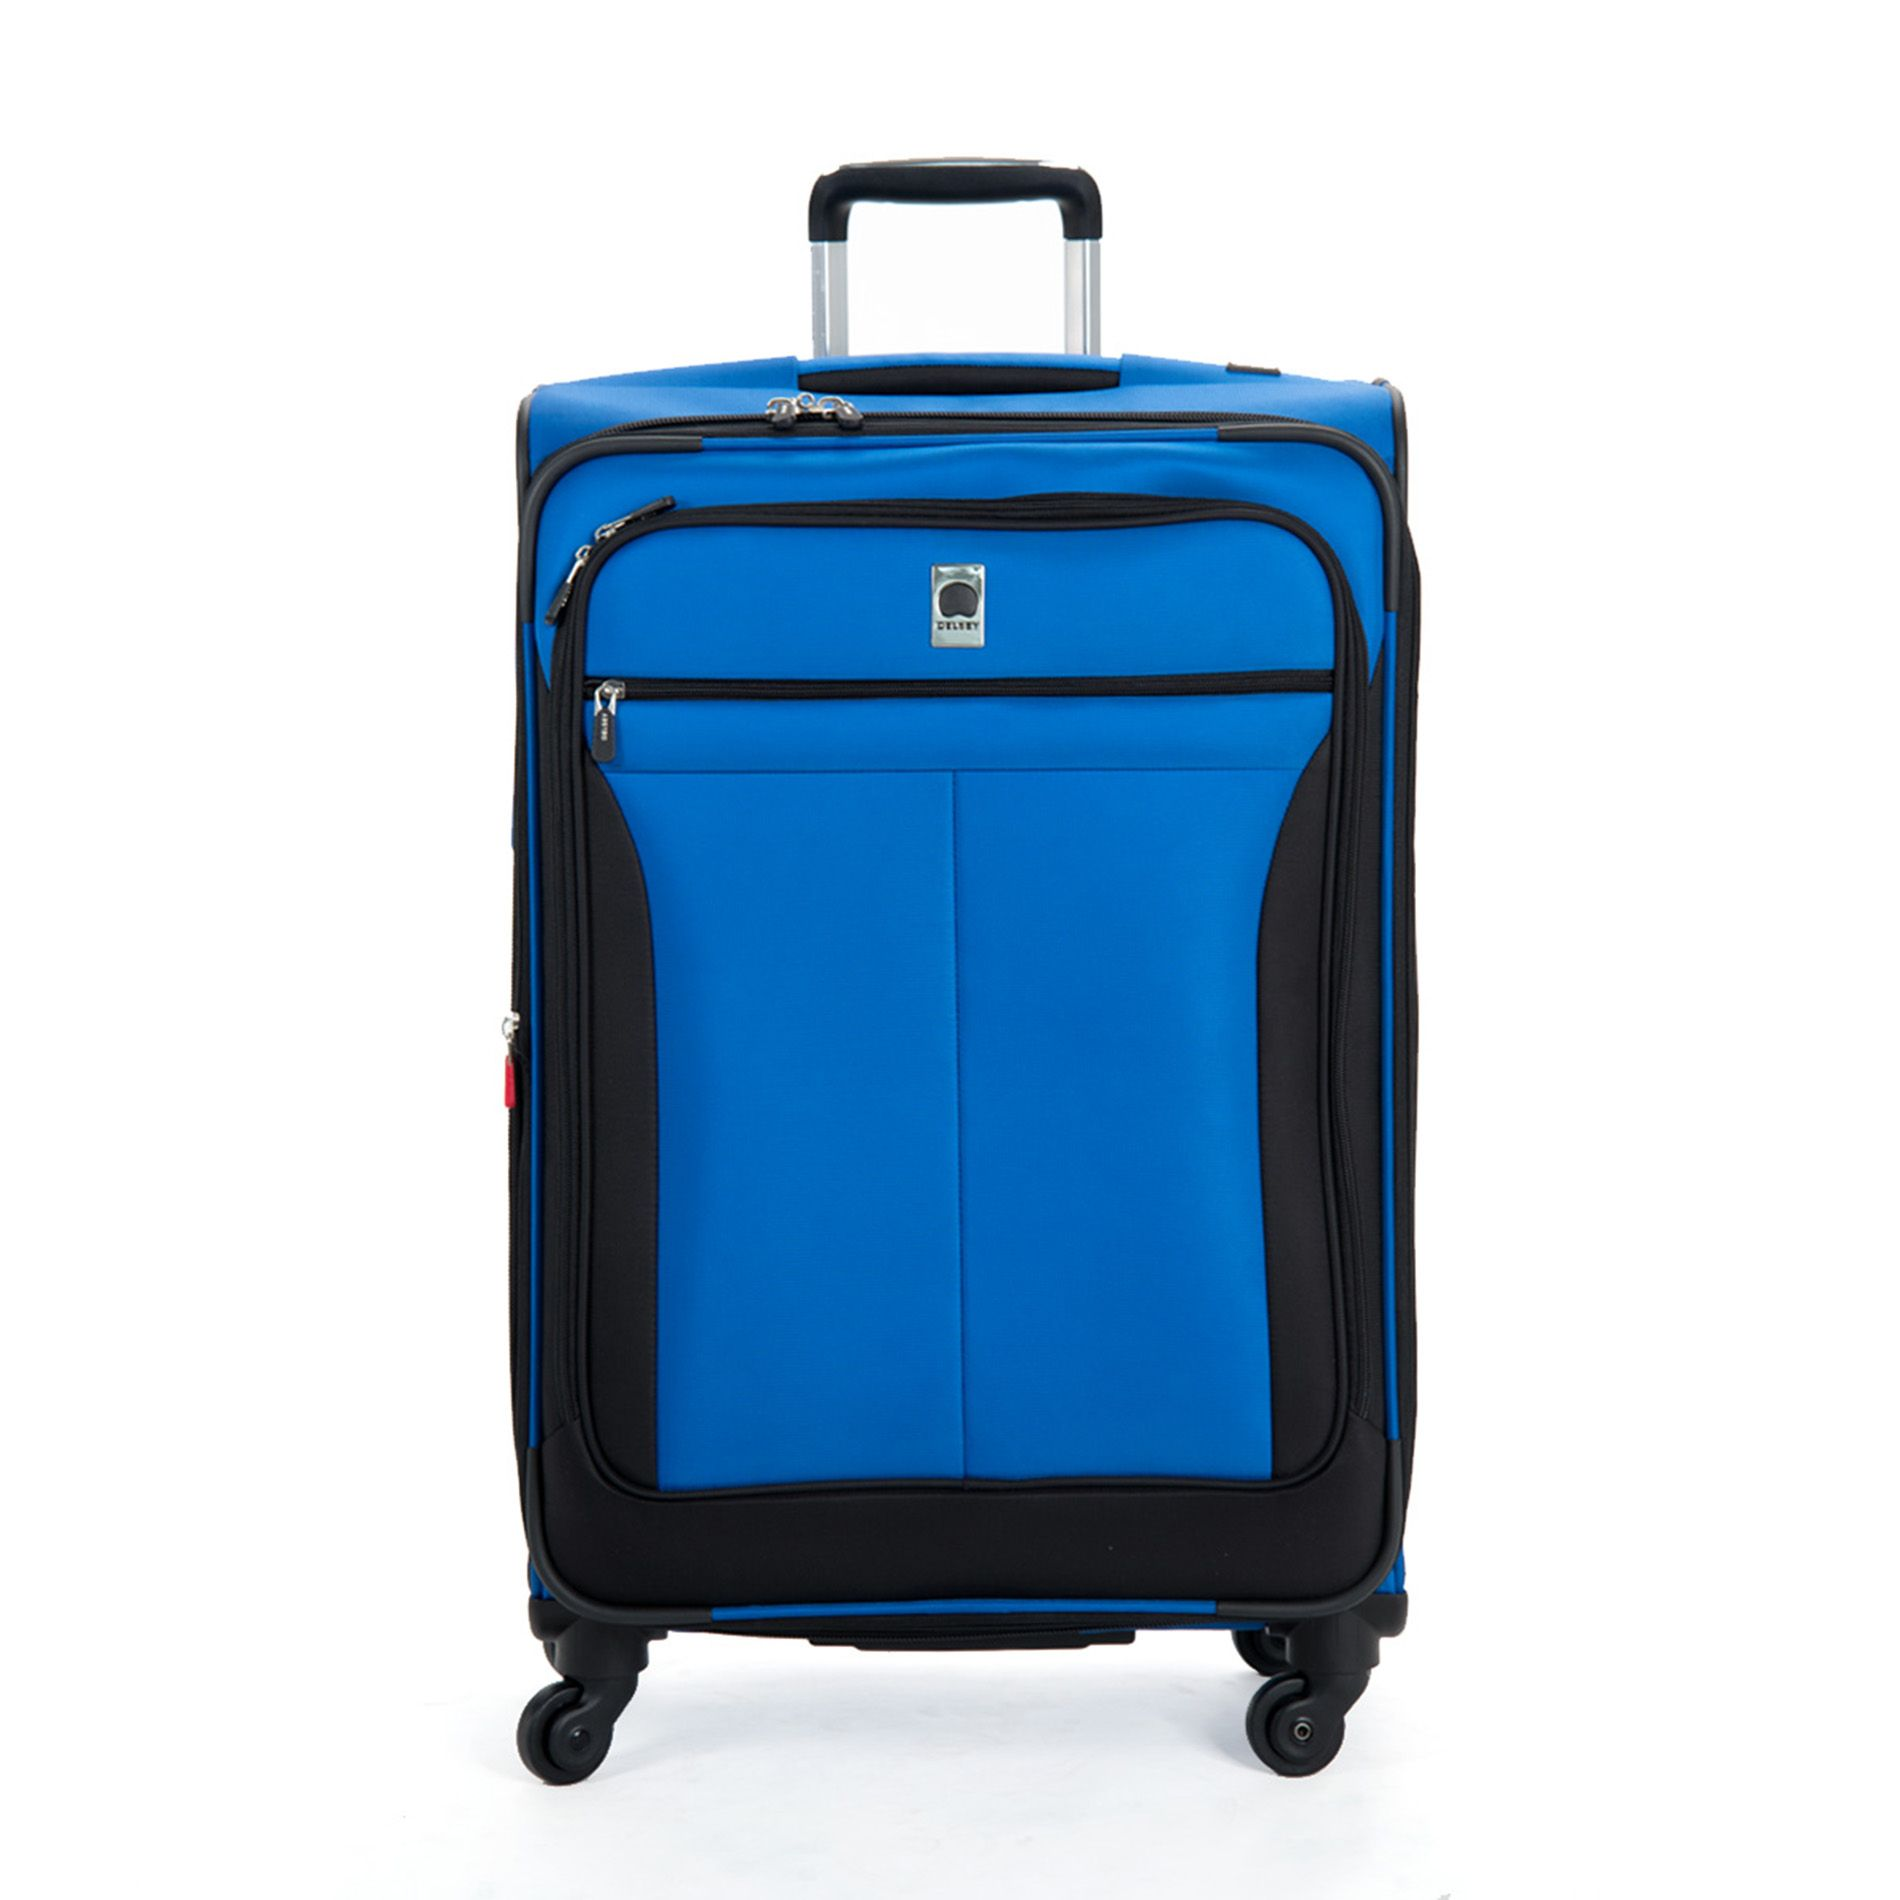 Delsey Luggage Horizon Lite 25 Exp. Spinner Suiter Trolley